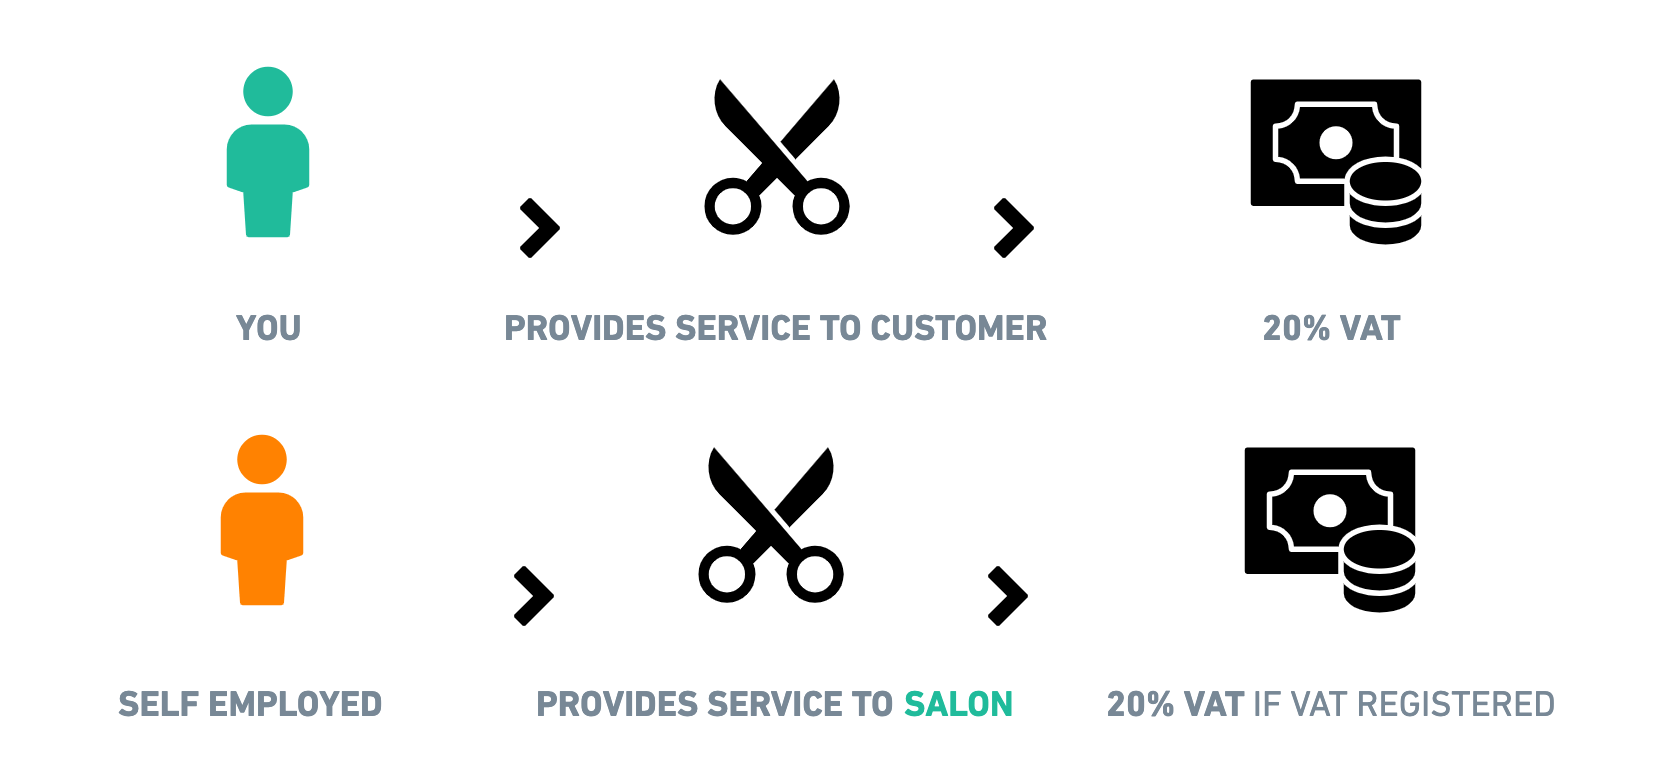 Hair-Salon-and-Barbers-Wireframes---Self-employed-1@2x-1